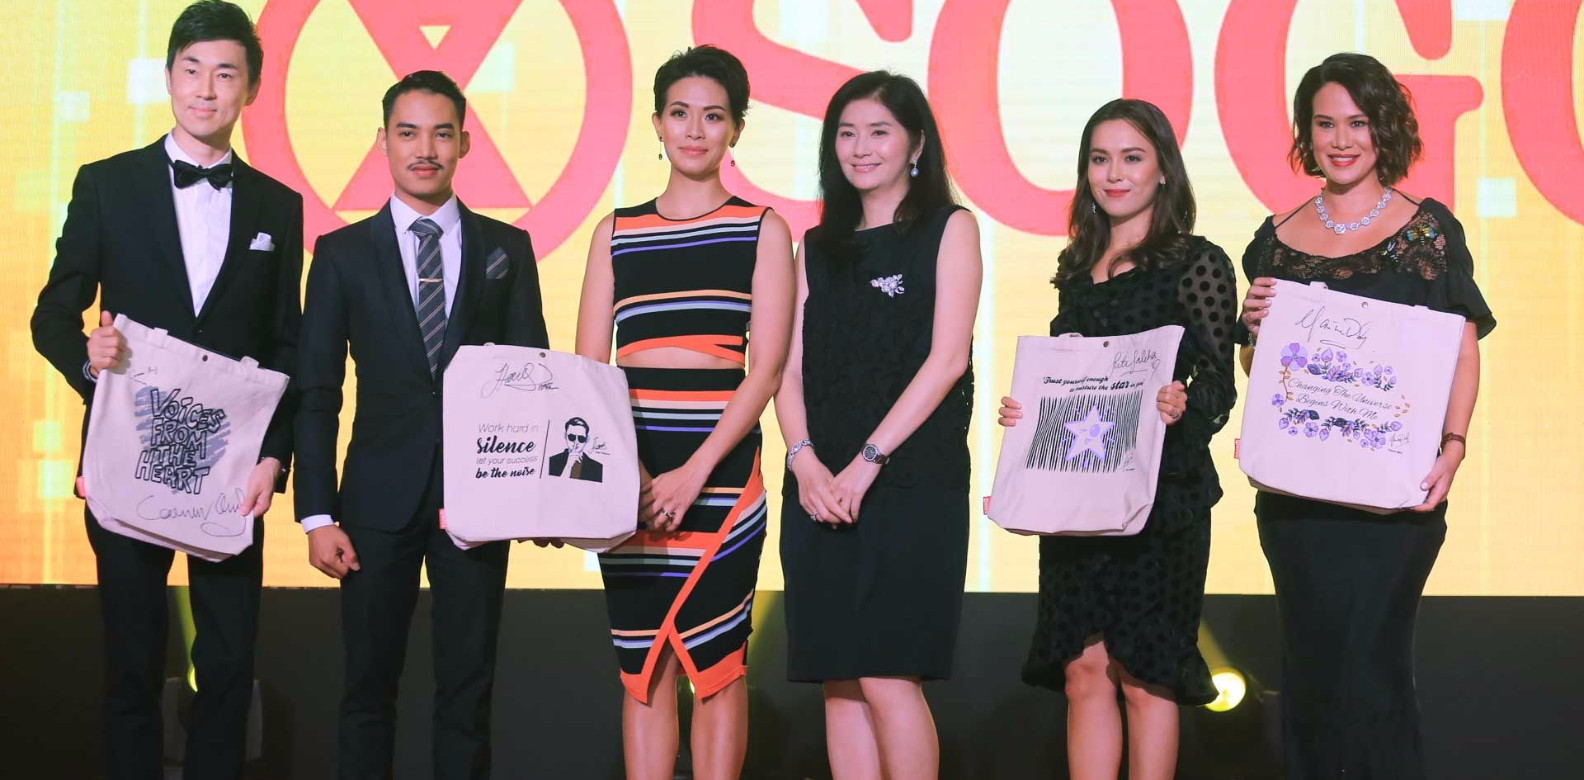 Carven Ong, Hael Husaini, Dr Andrea Lim, Datin Rita Shum, Siti Saleha, and Datin Elaine Daly with their charity tote bags